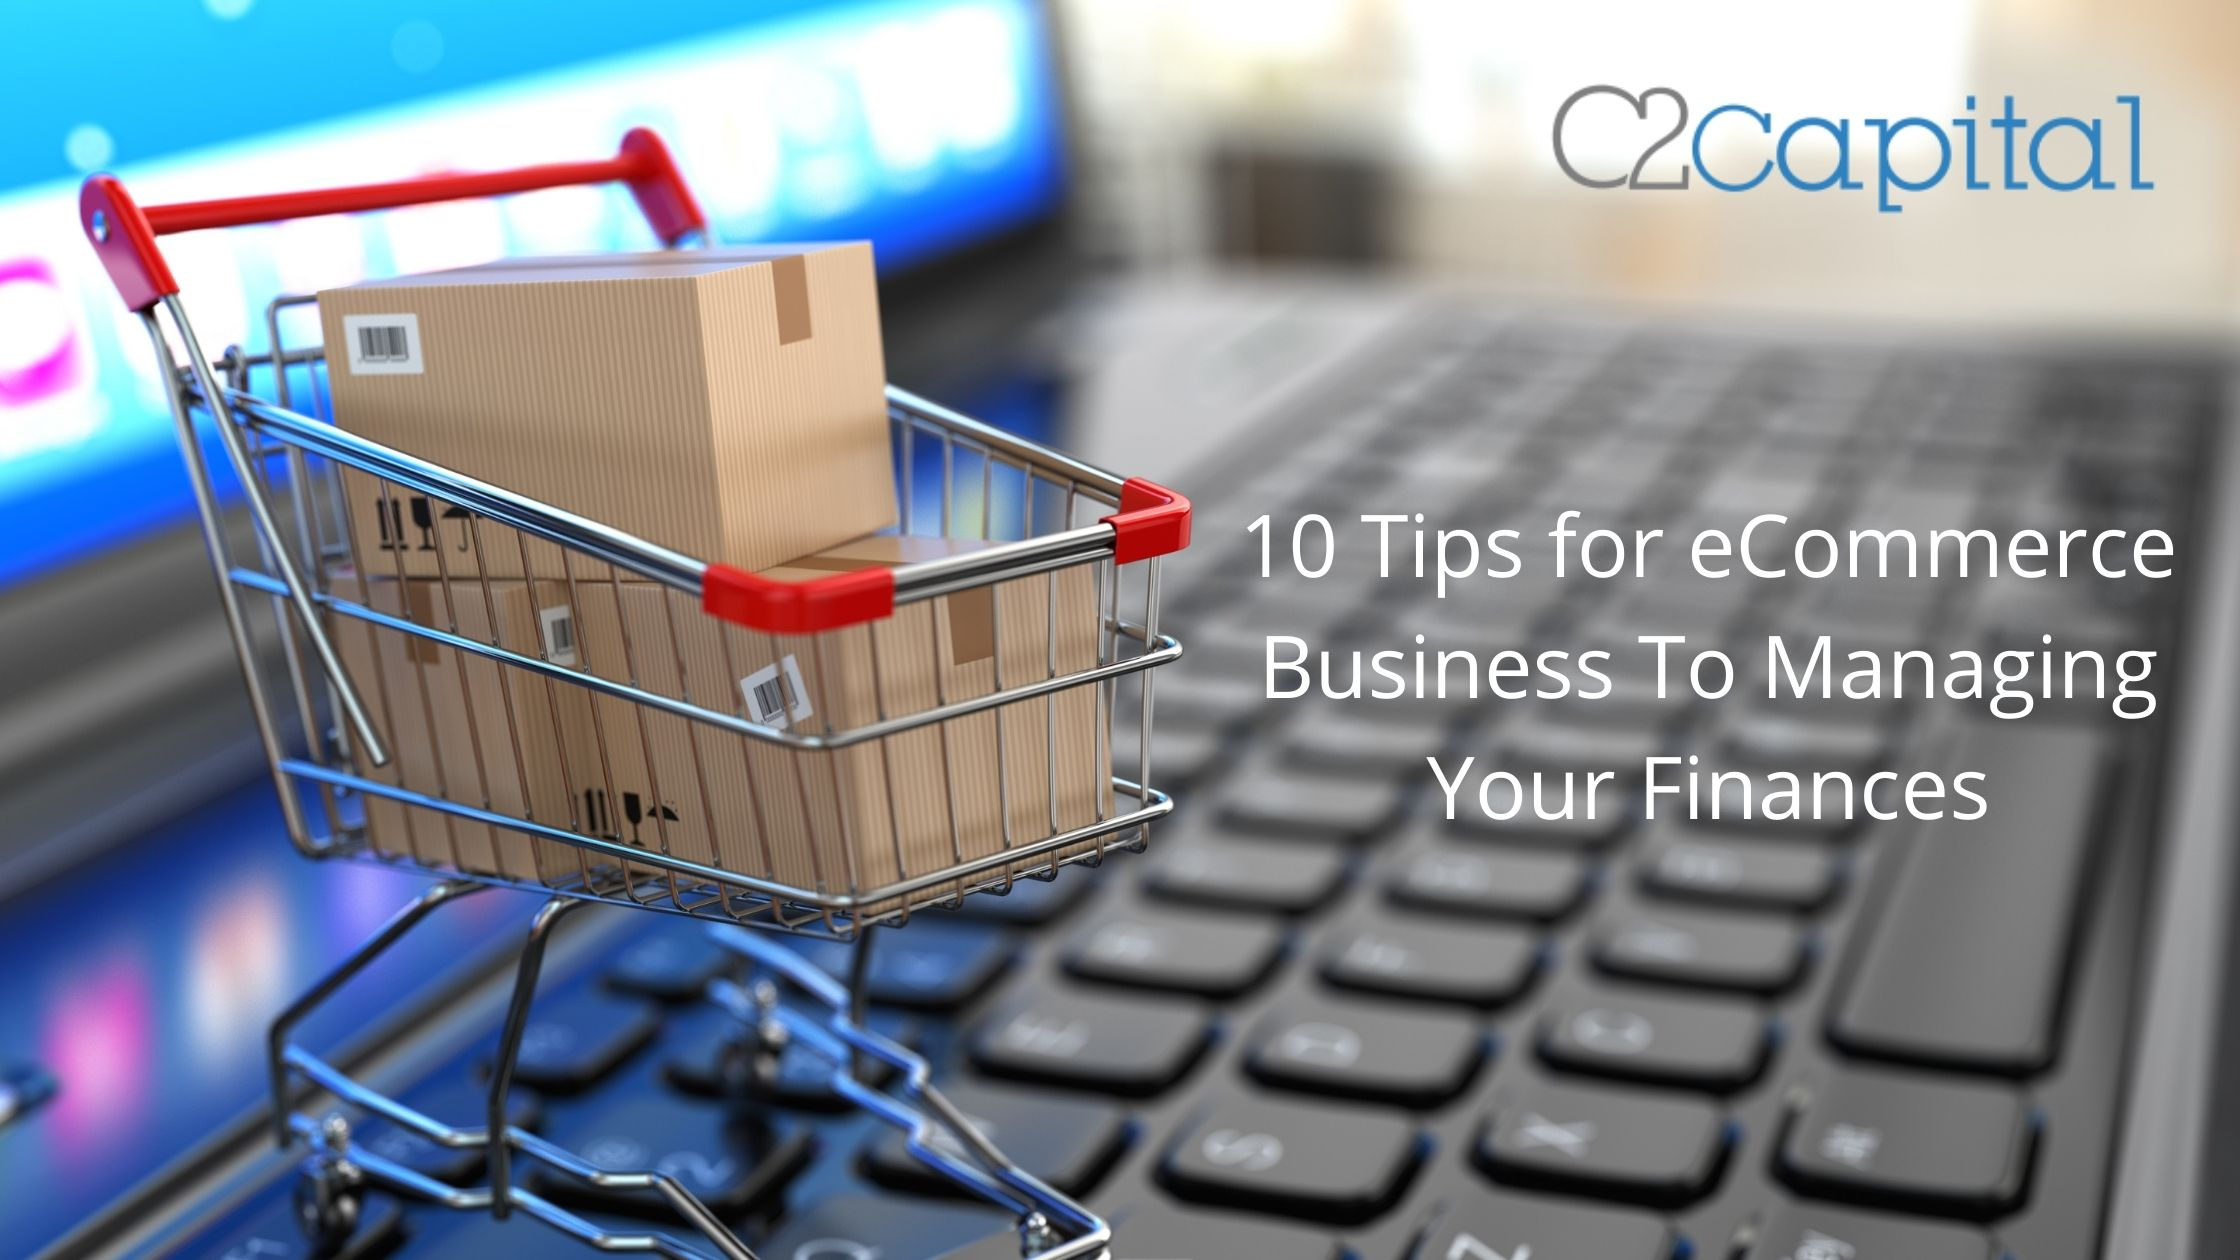 10 Tips For eCommerce Business To Managing Your Finances